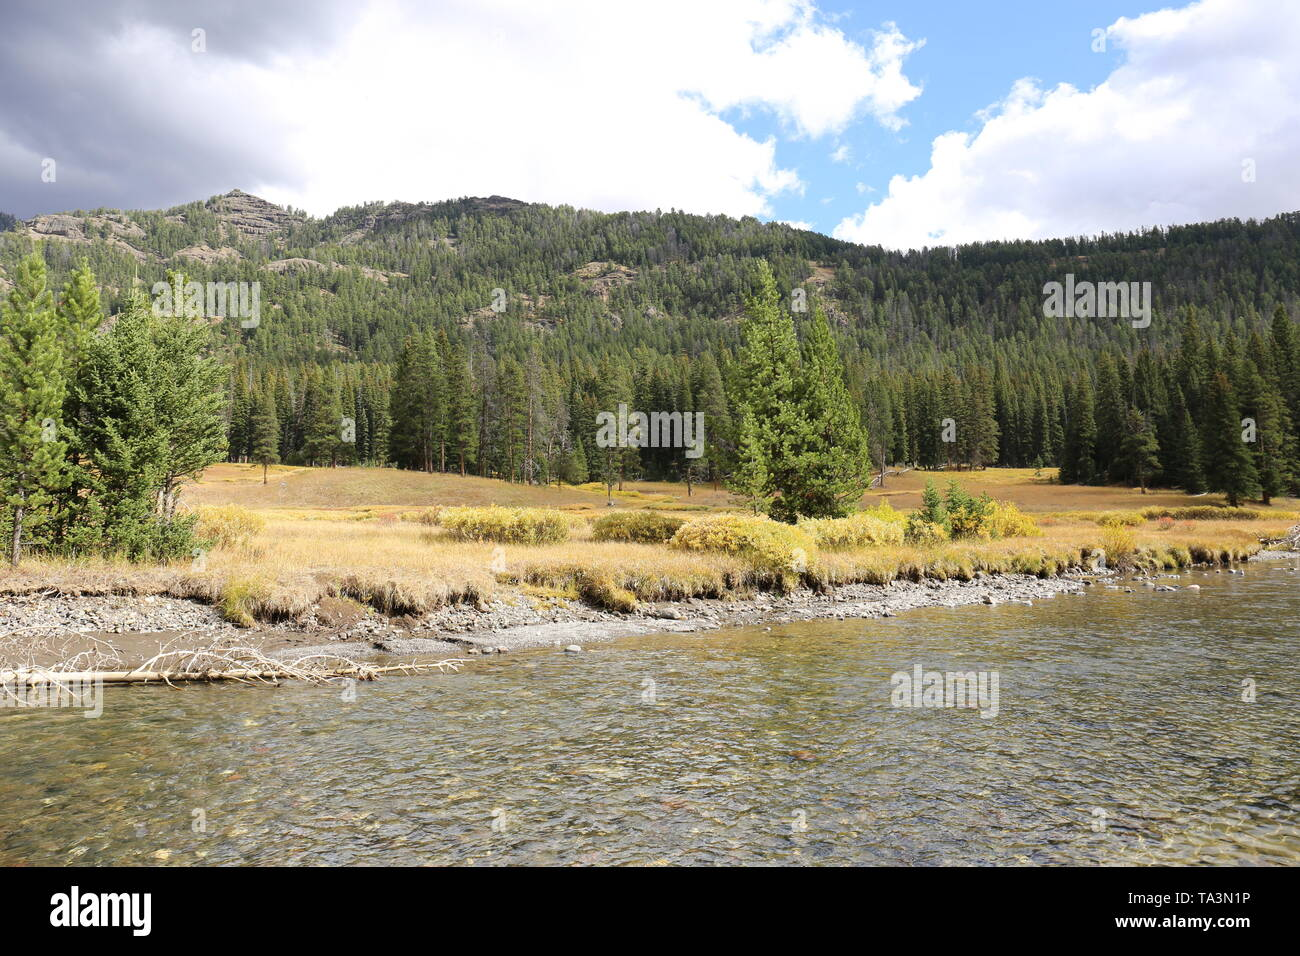 Stony river with a small, forested mountain in background - Stock Image